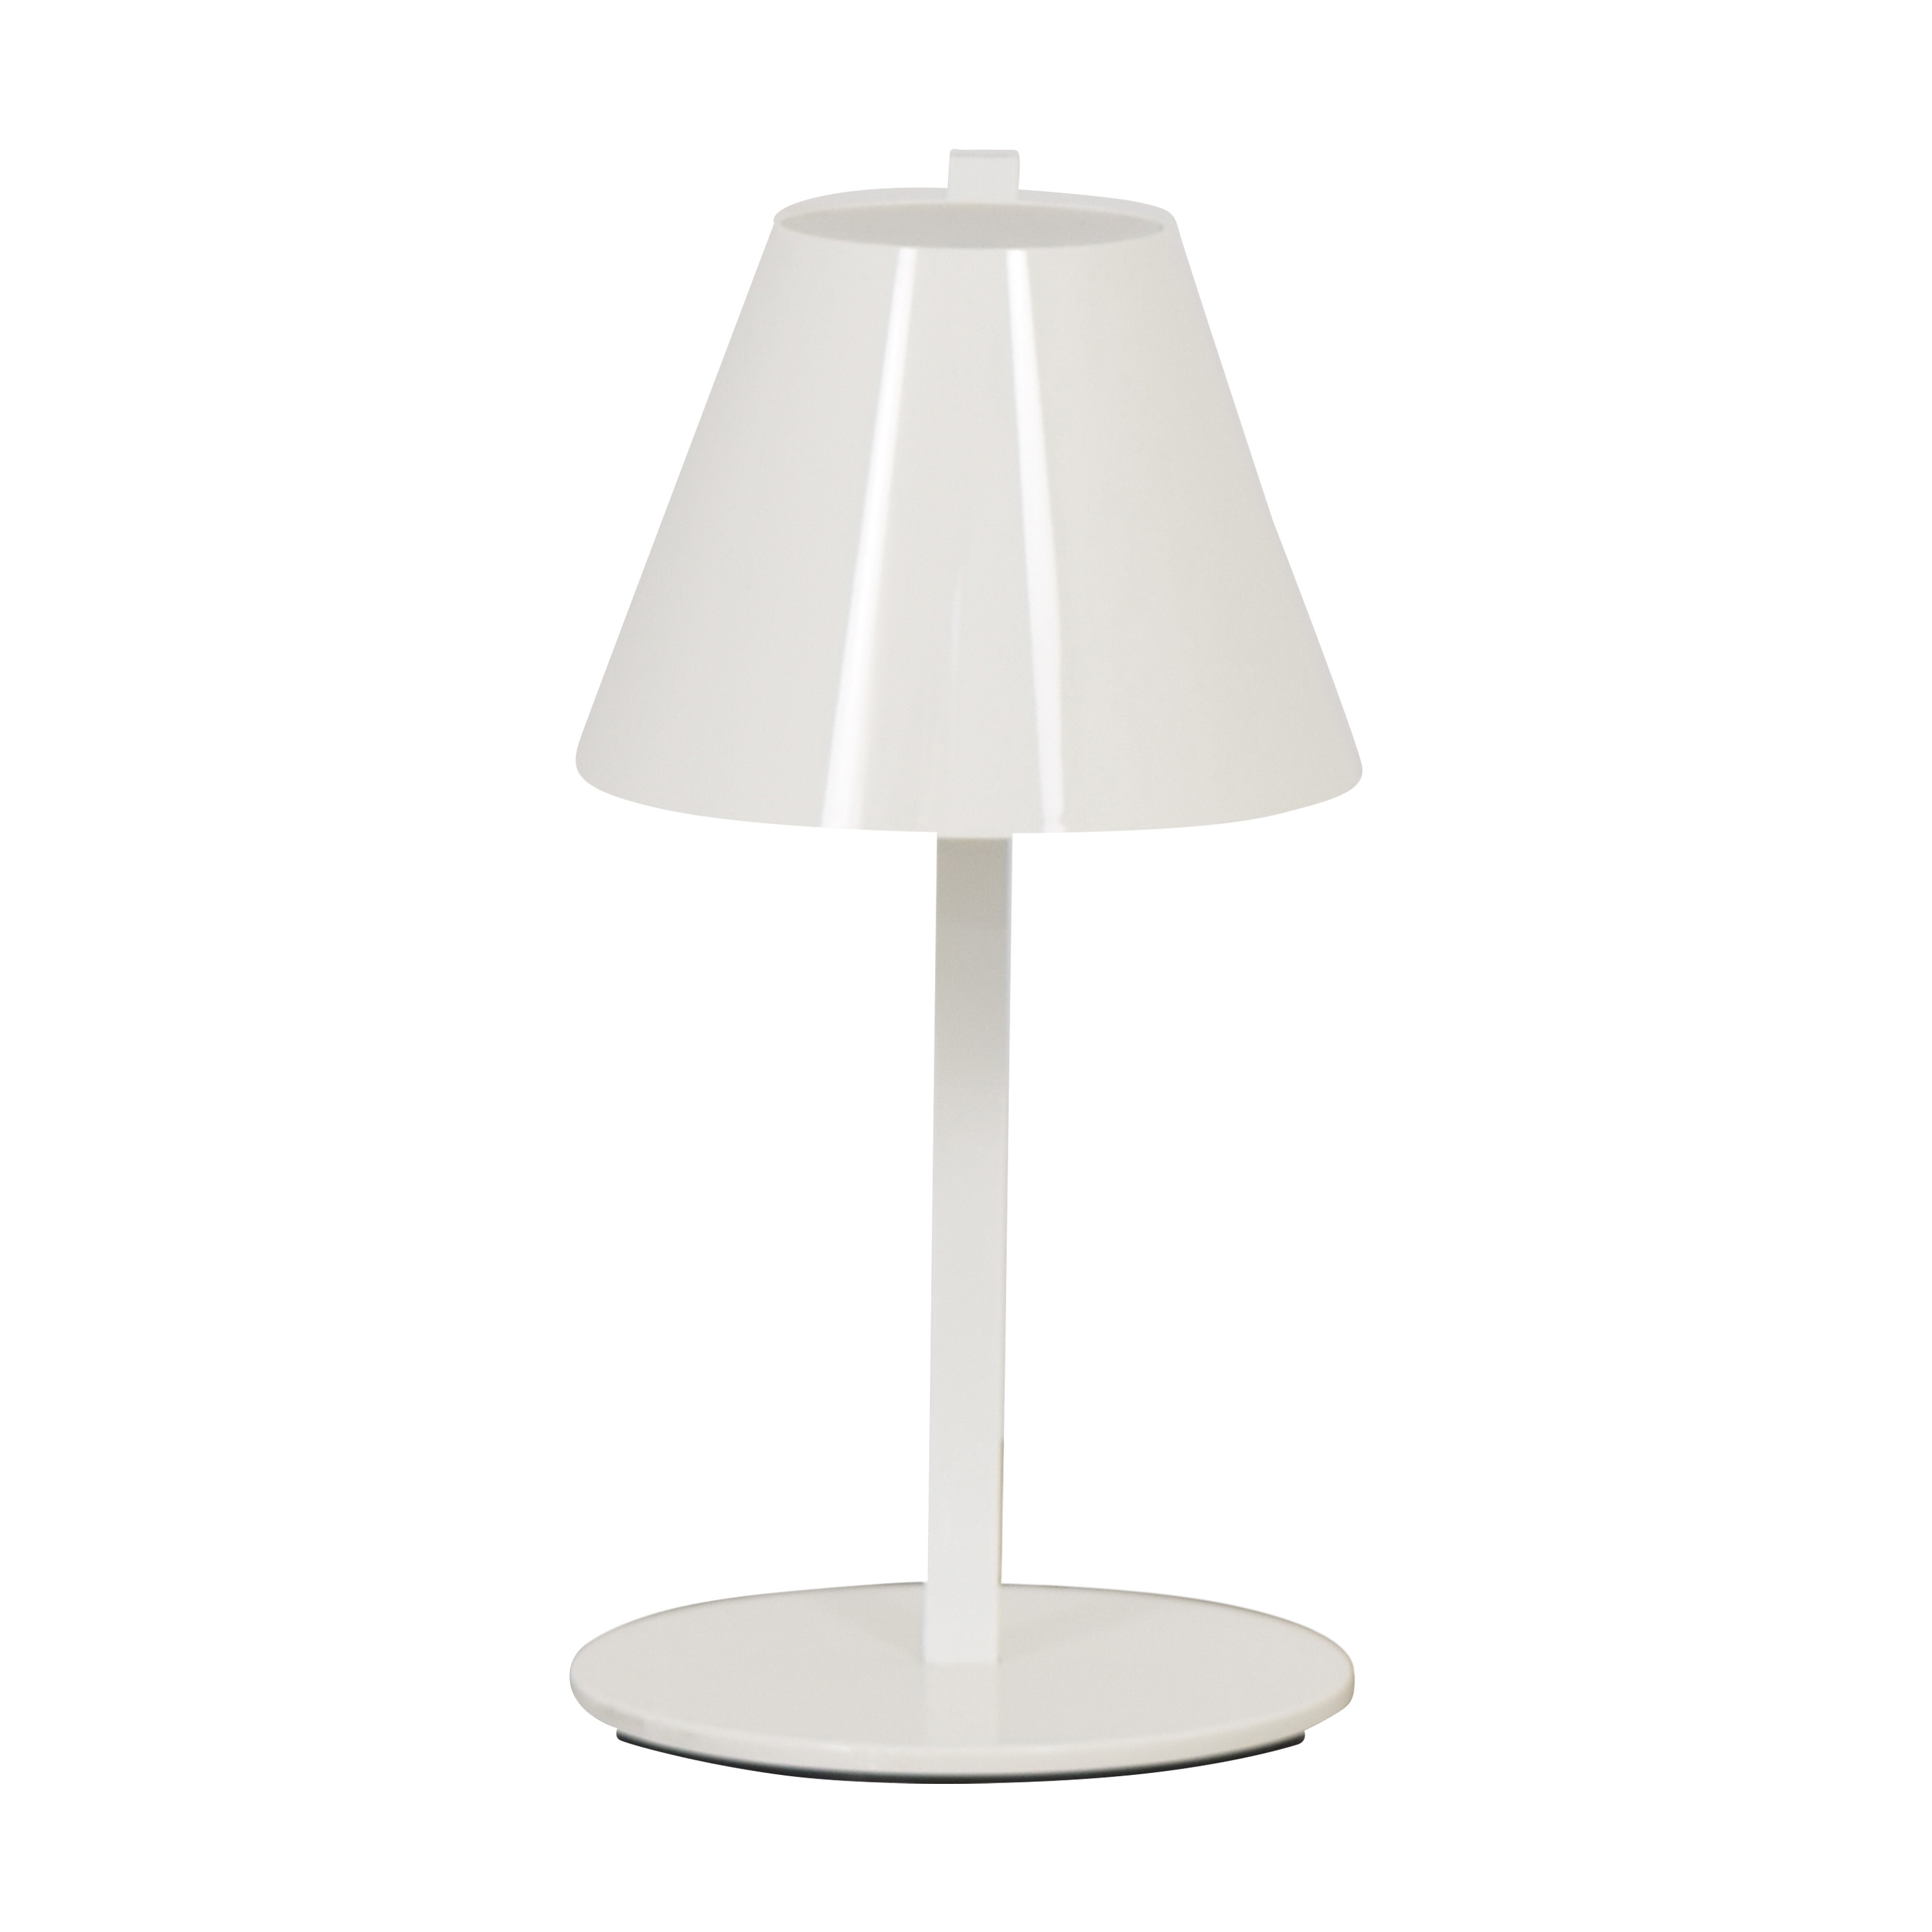 Artemide La Petite Table Lamp / Decor